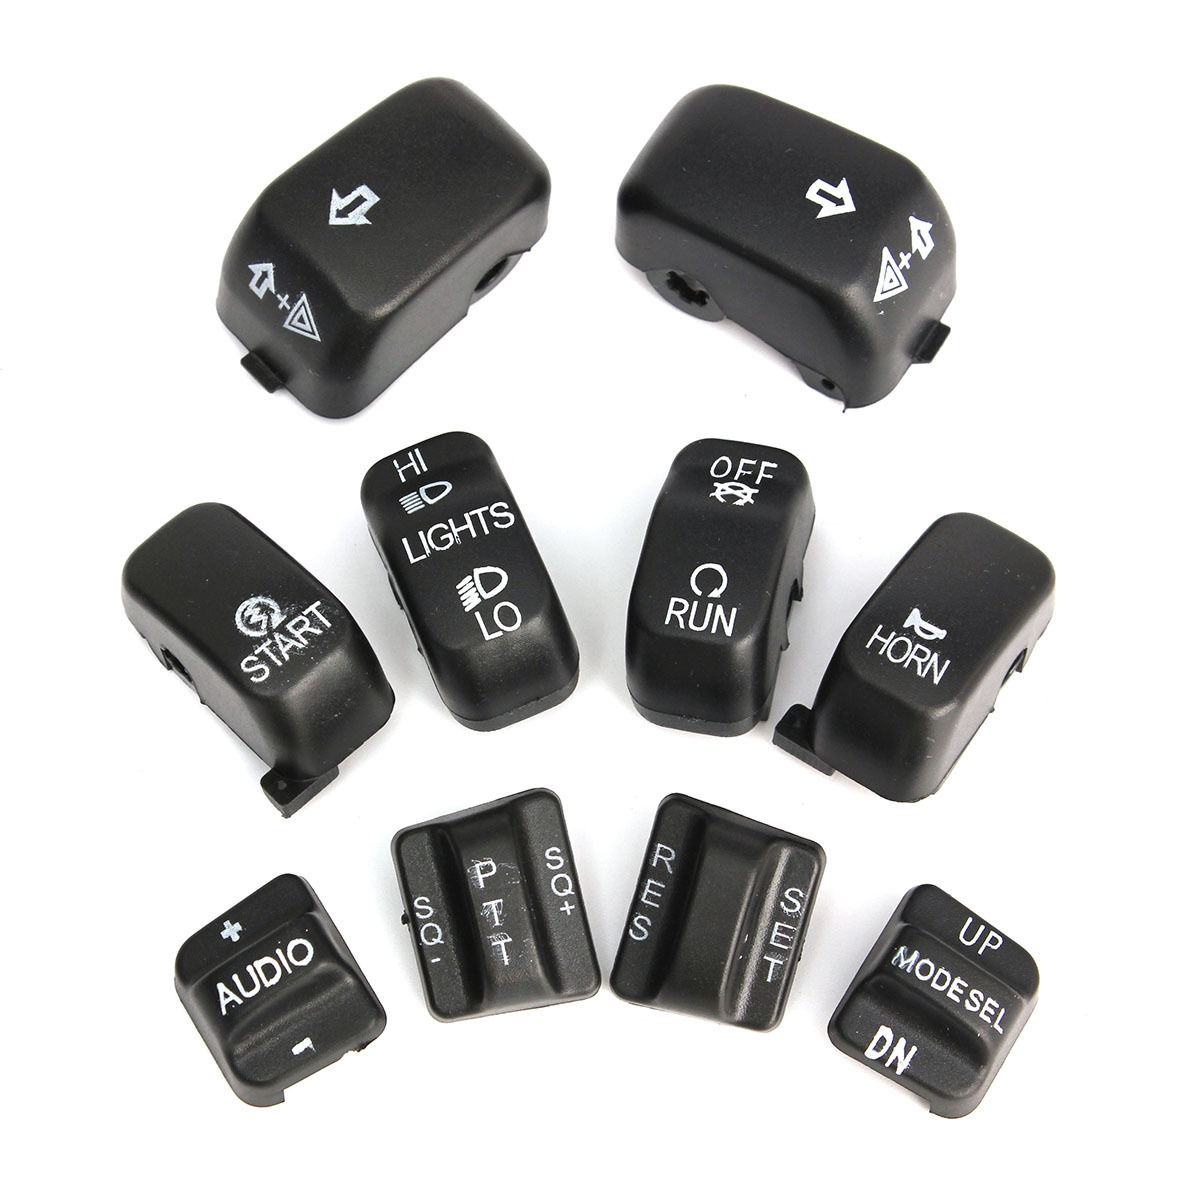 BLACK 10-PIECE RADIO CRUISE CONTROL SWITCH CAP KIT FOR 1996-2013 HARLEY TOURING